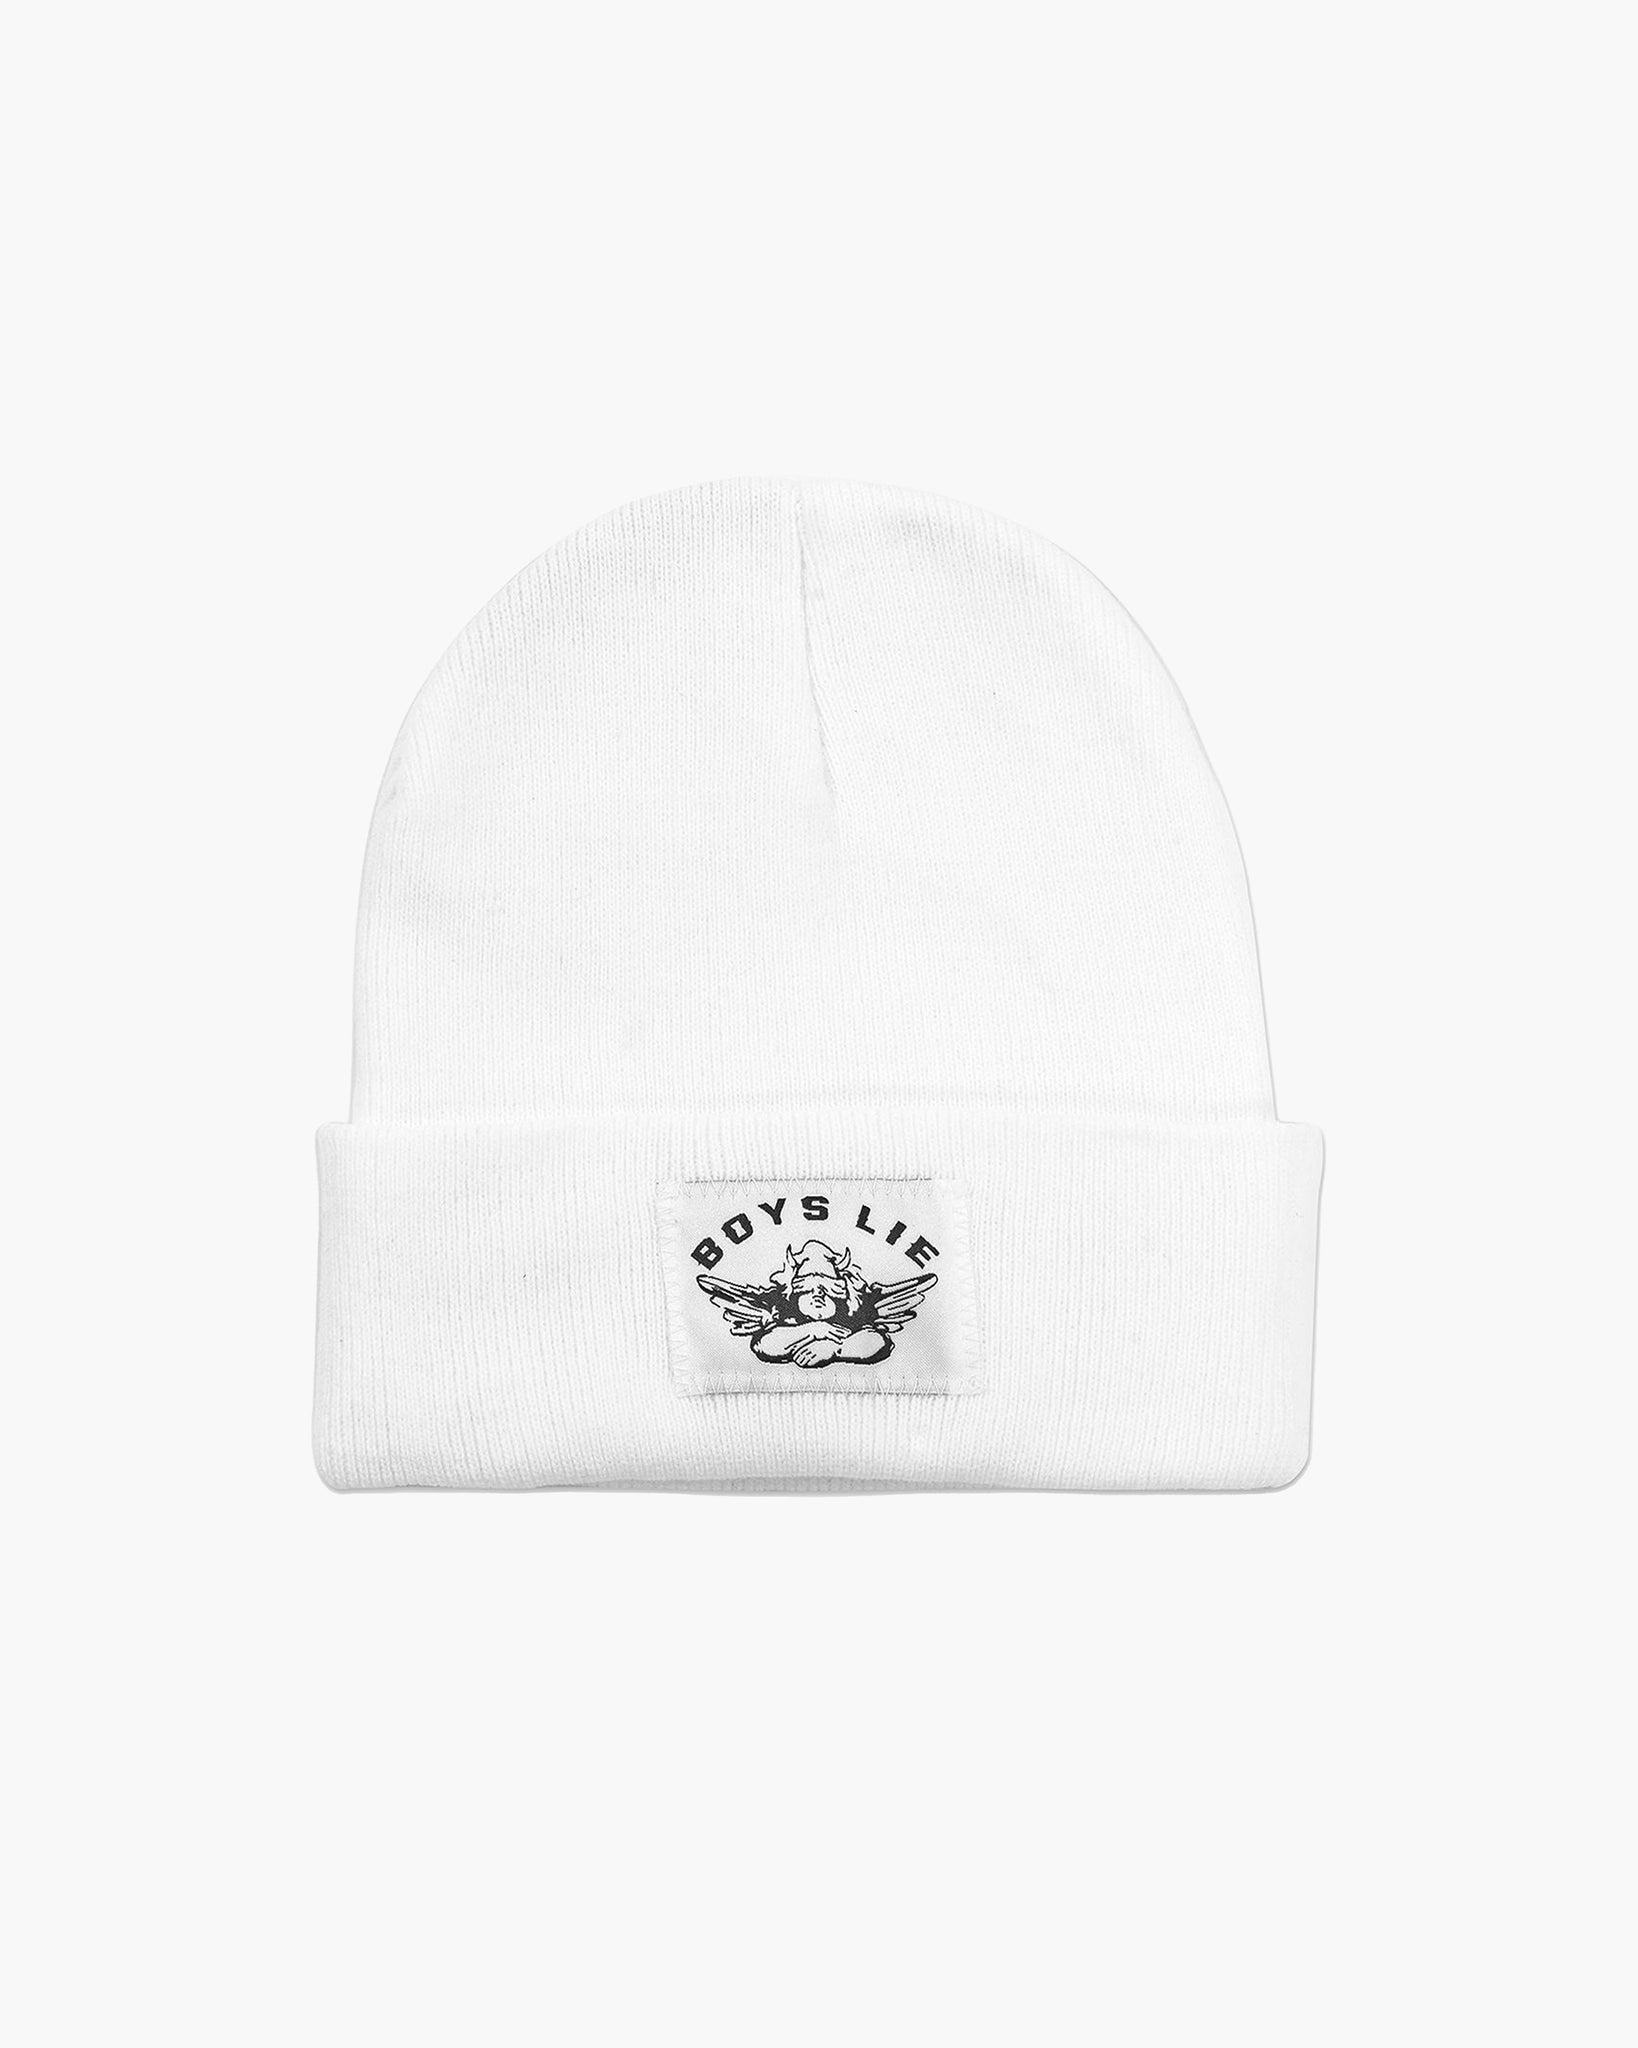 BOYS LIE WHITE BEANIE